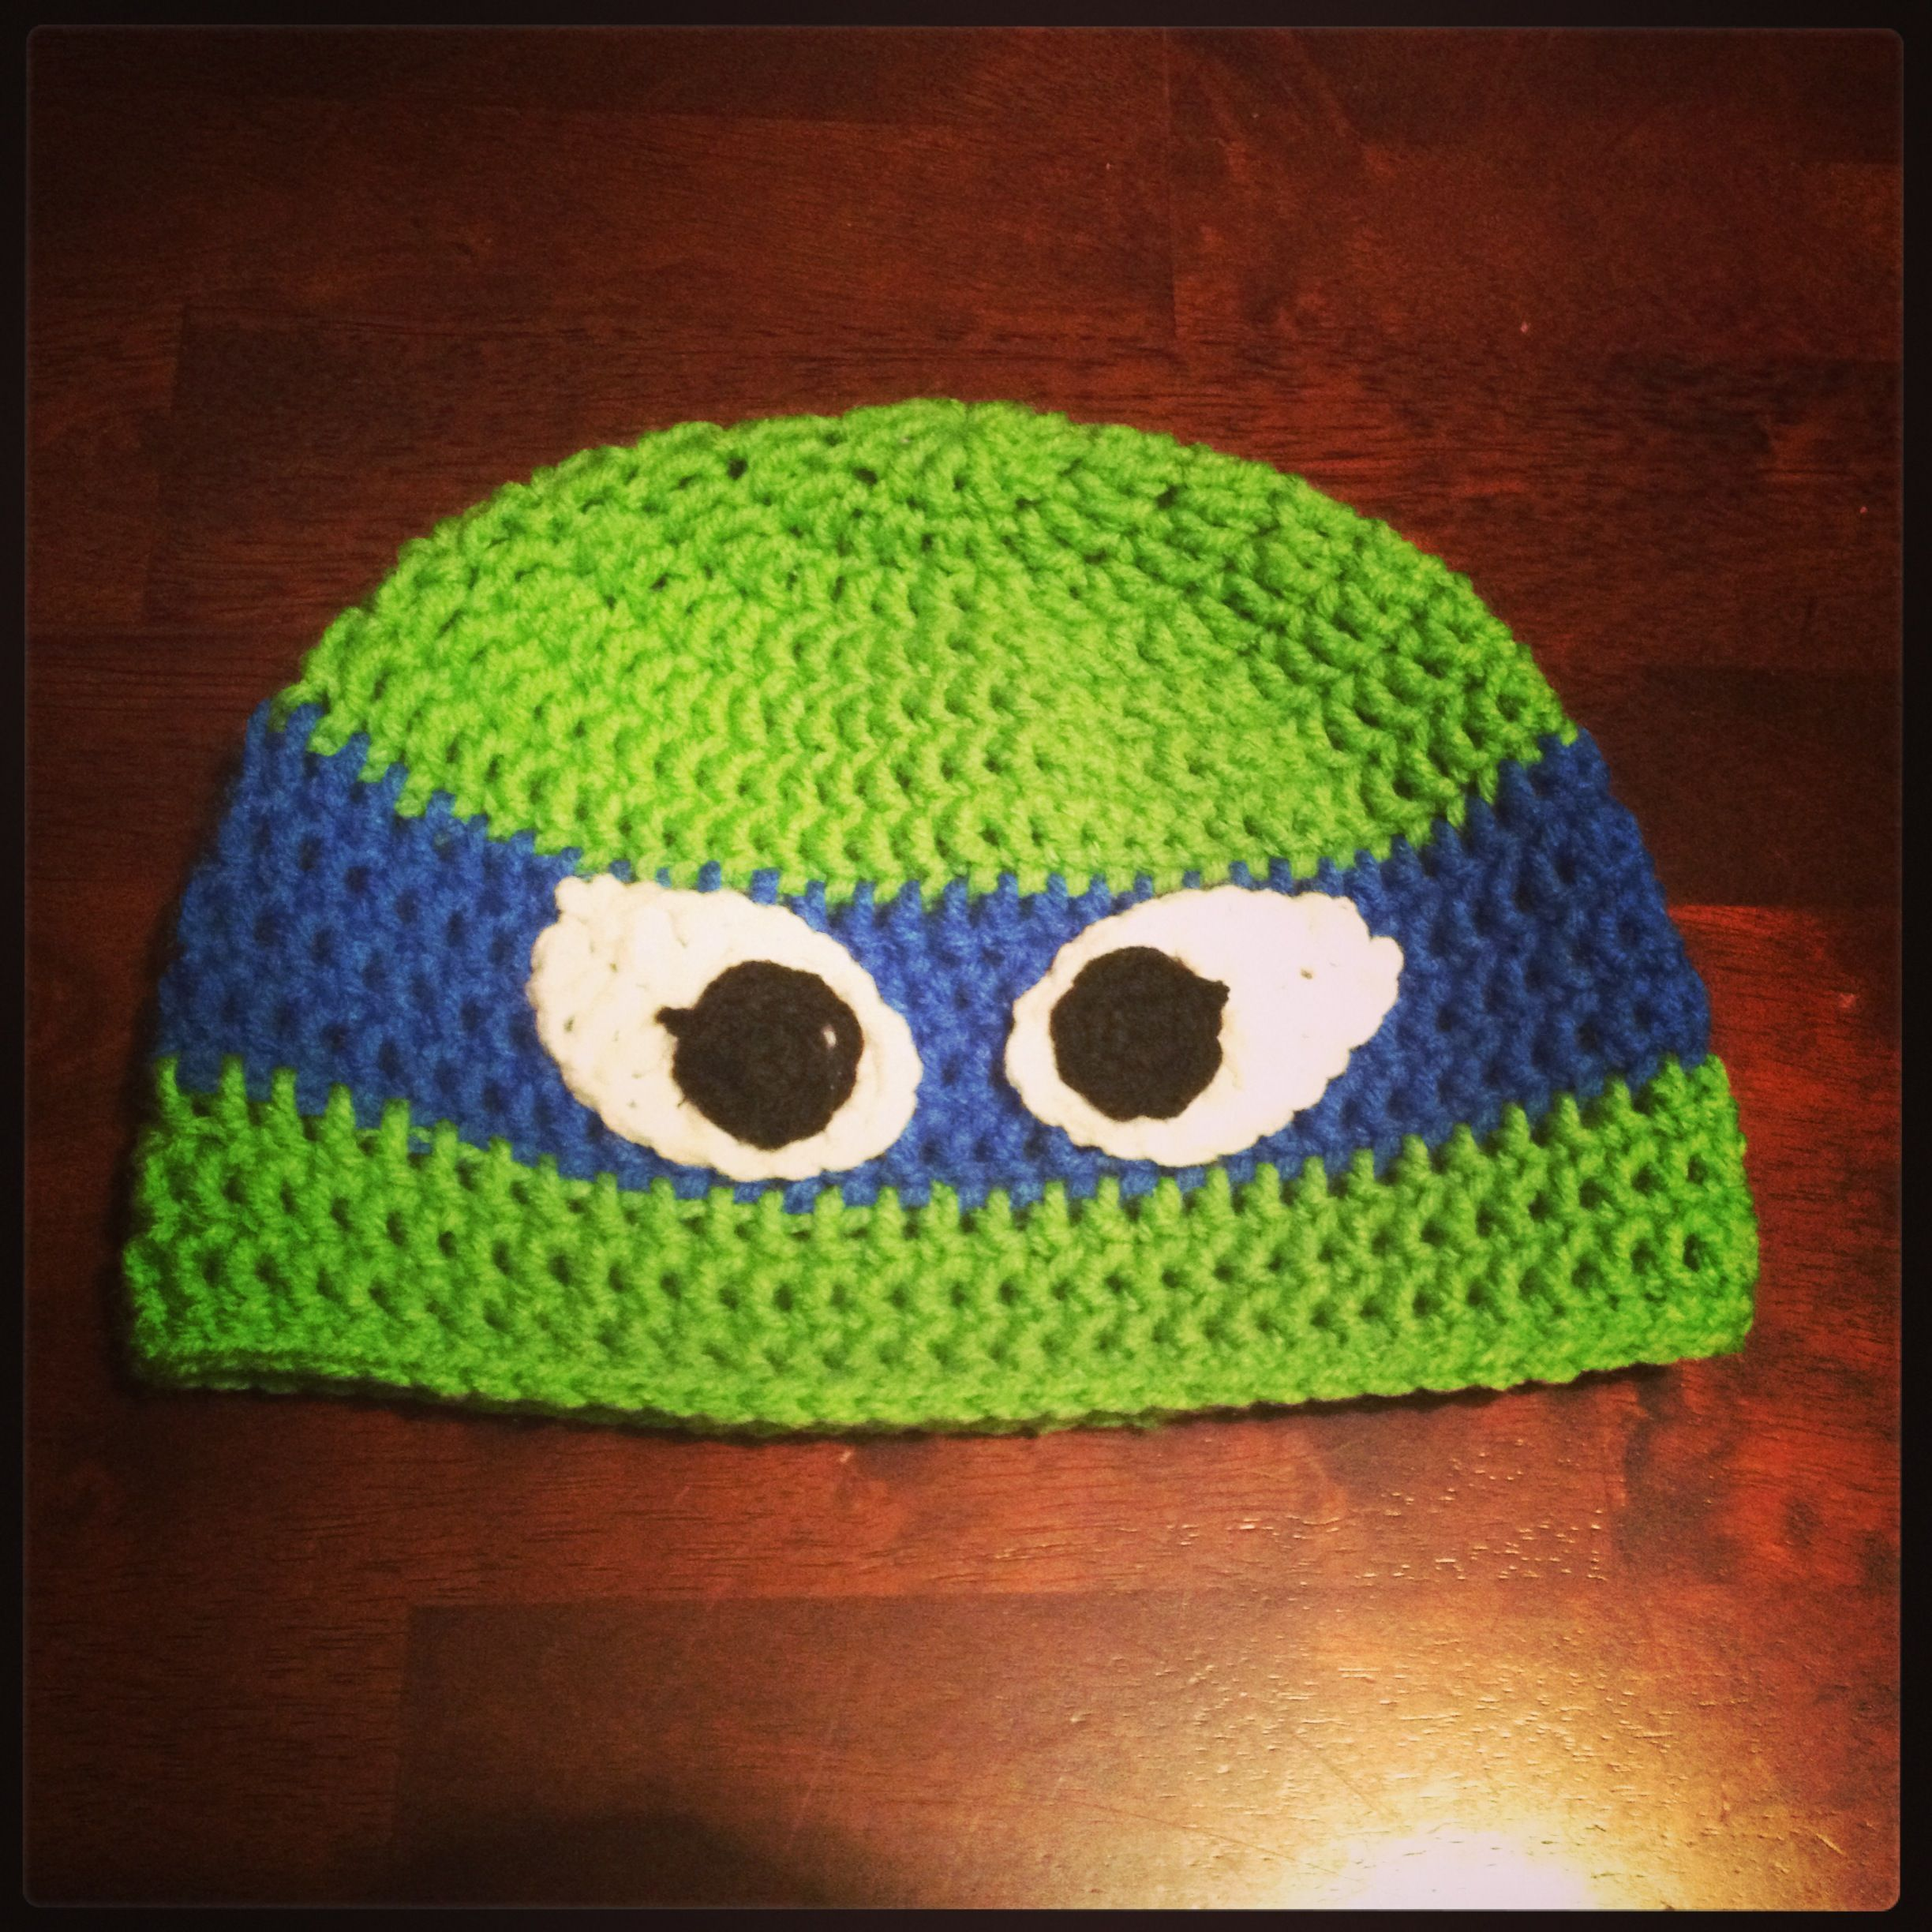 Crochet Ninja Turtle : Crochet Ninja Turtle Hat Leonardo!! Teenage mutant ninja turtles ...